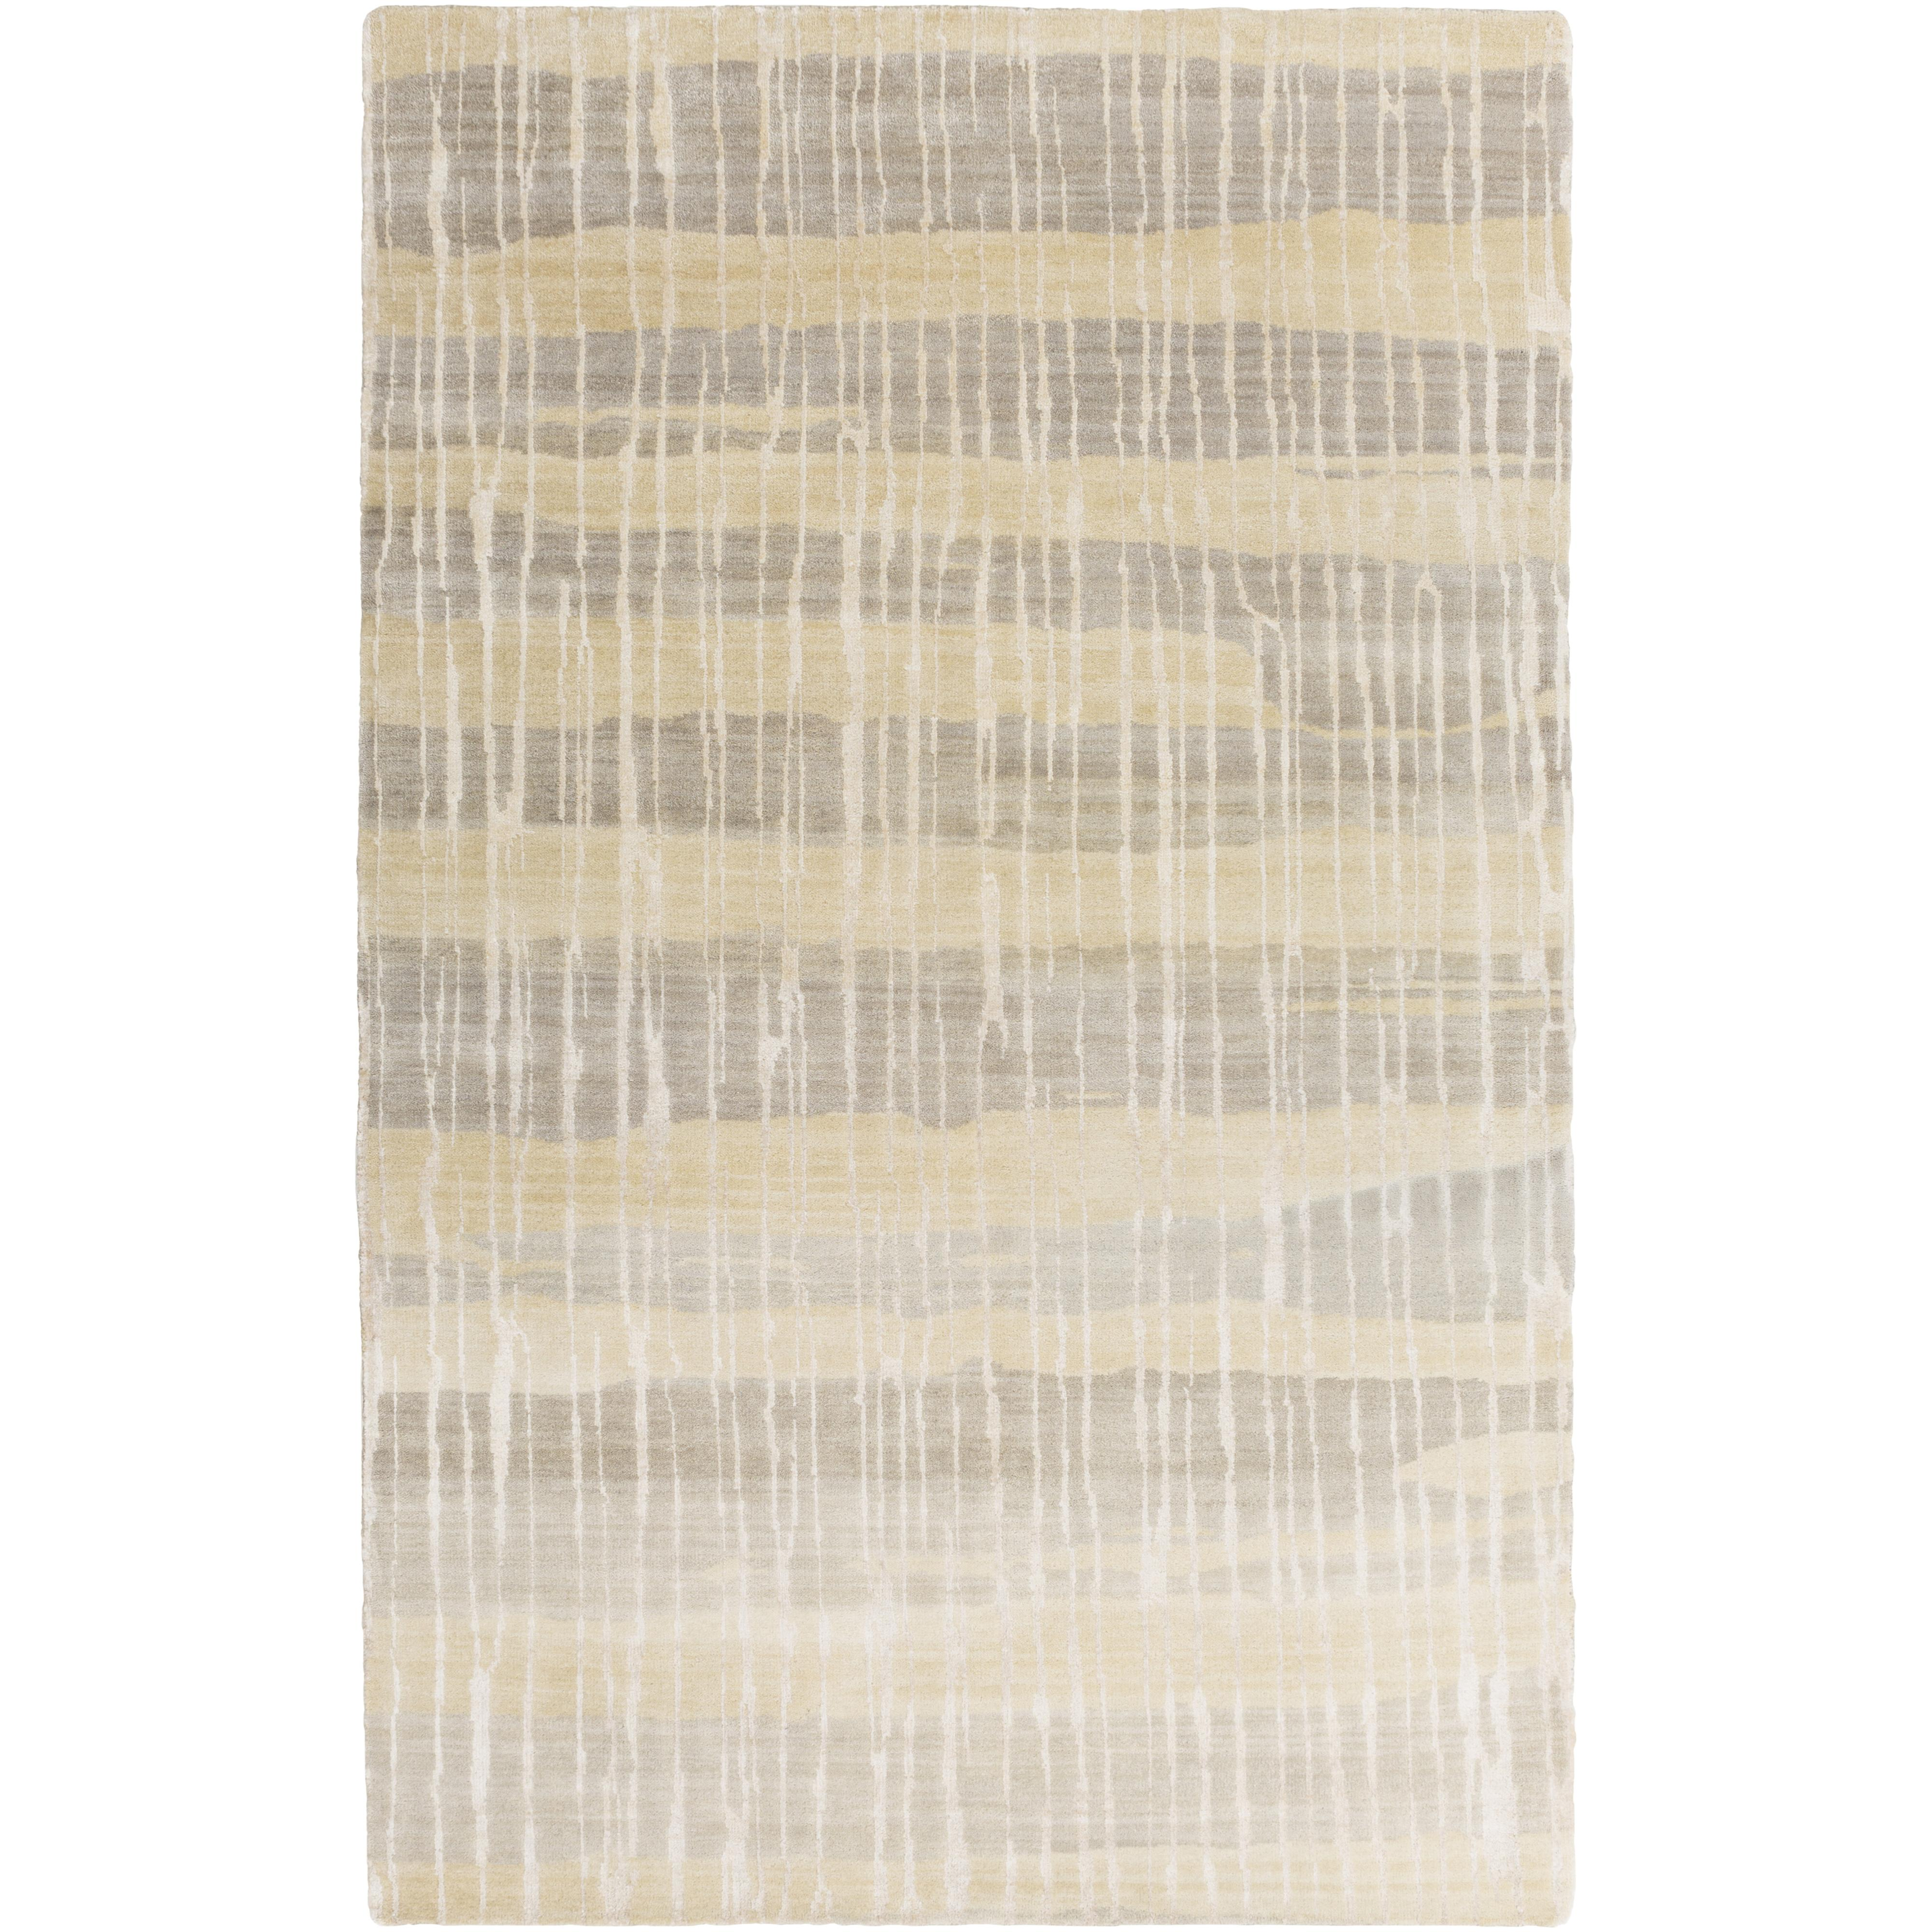 Surya Rugs Luminous 5' x 8' - Item Number: LMN3019-58